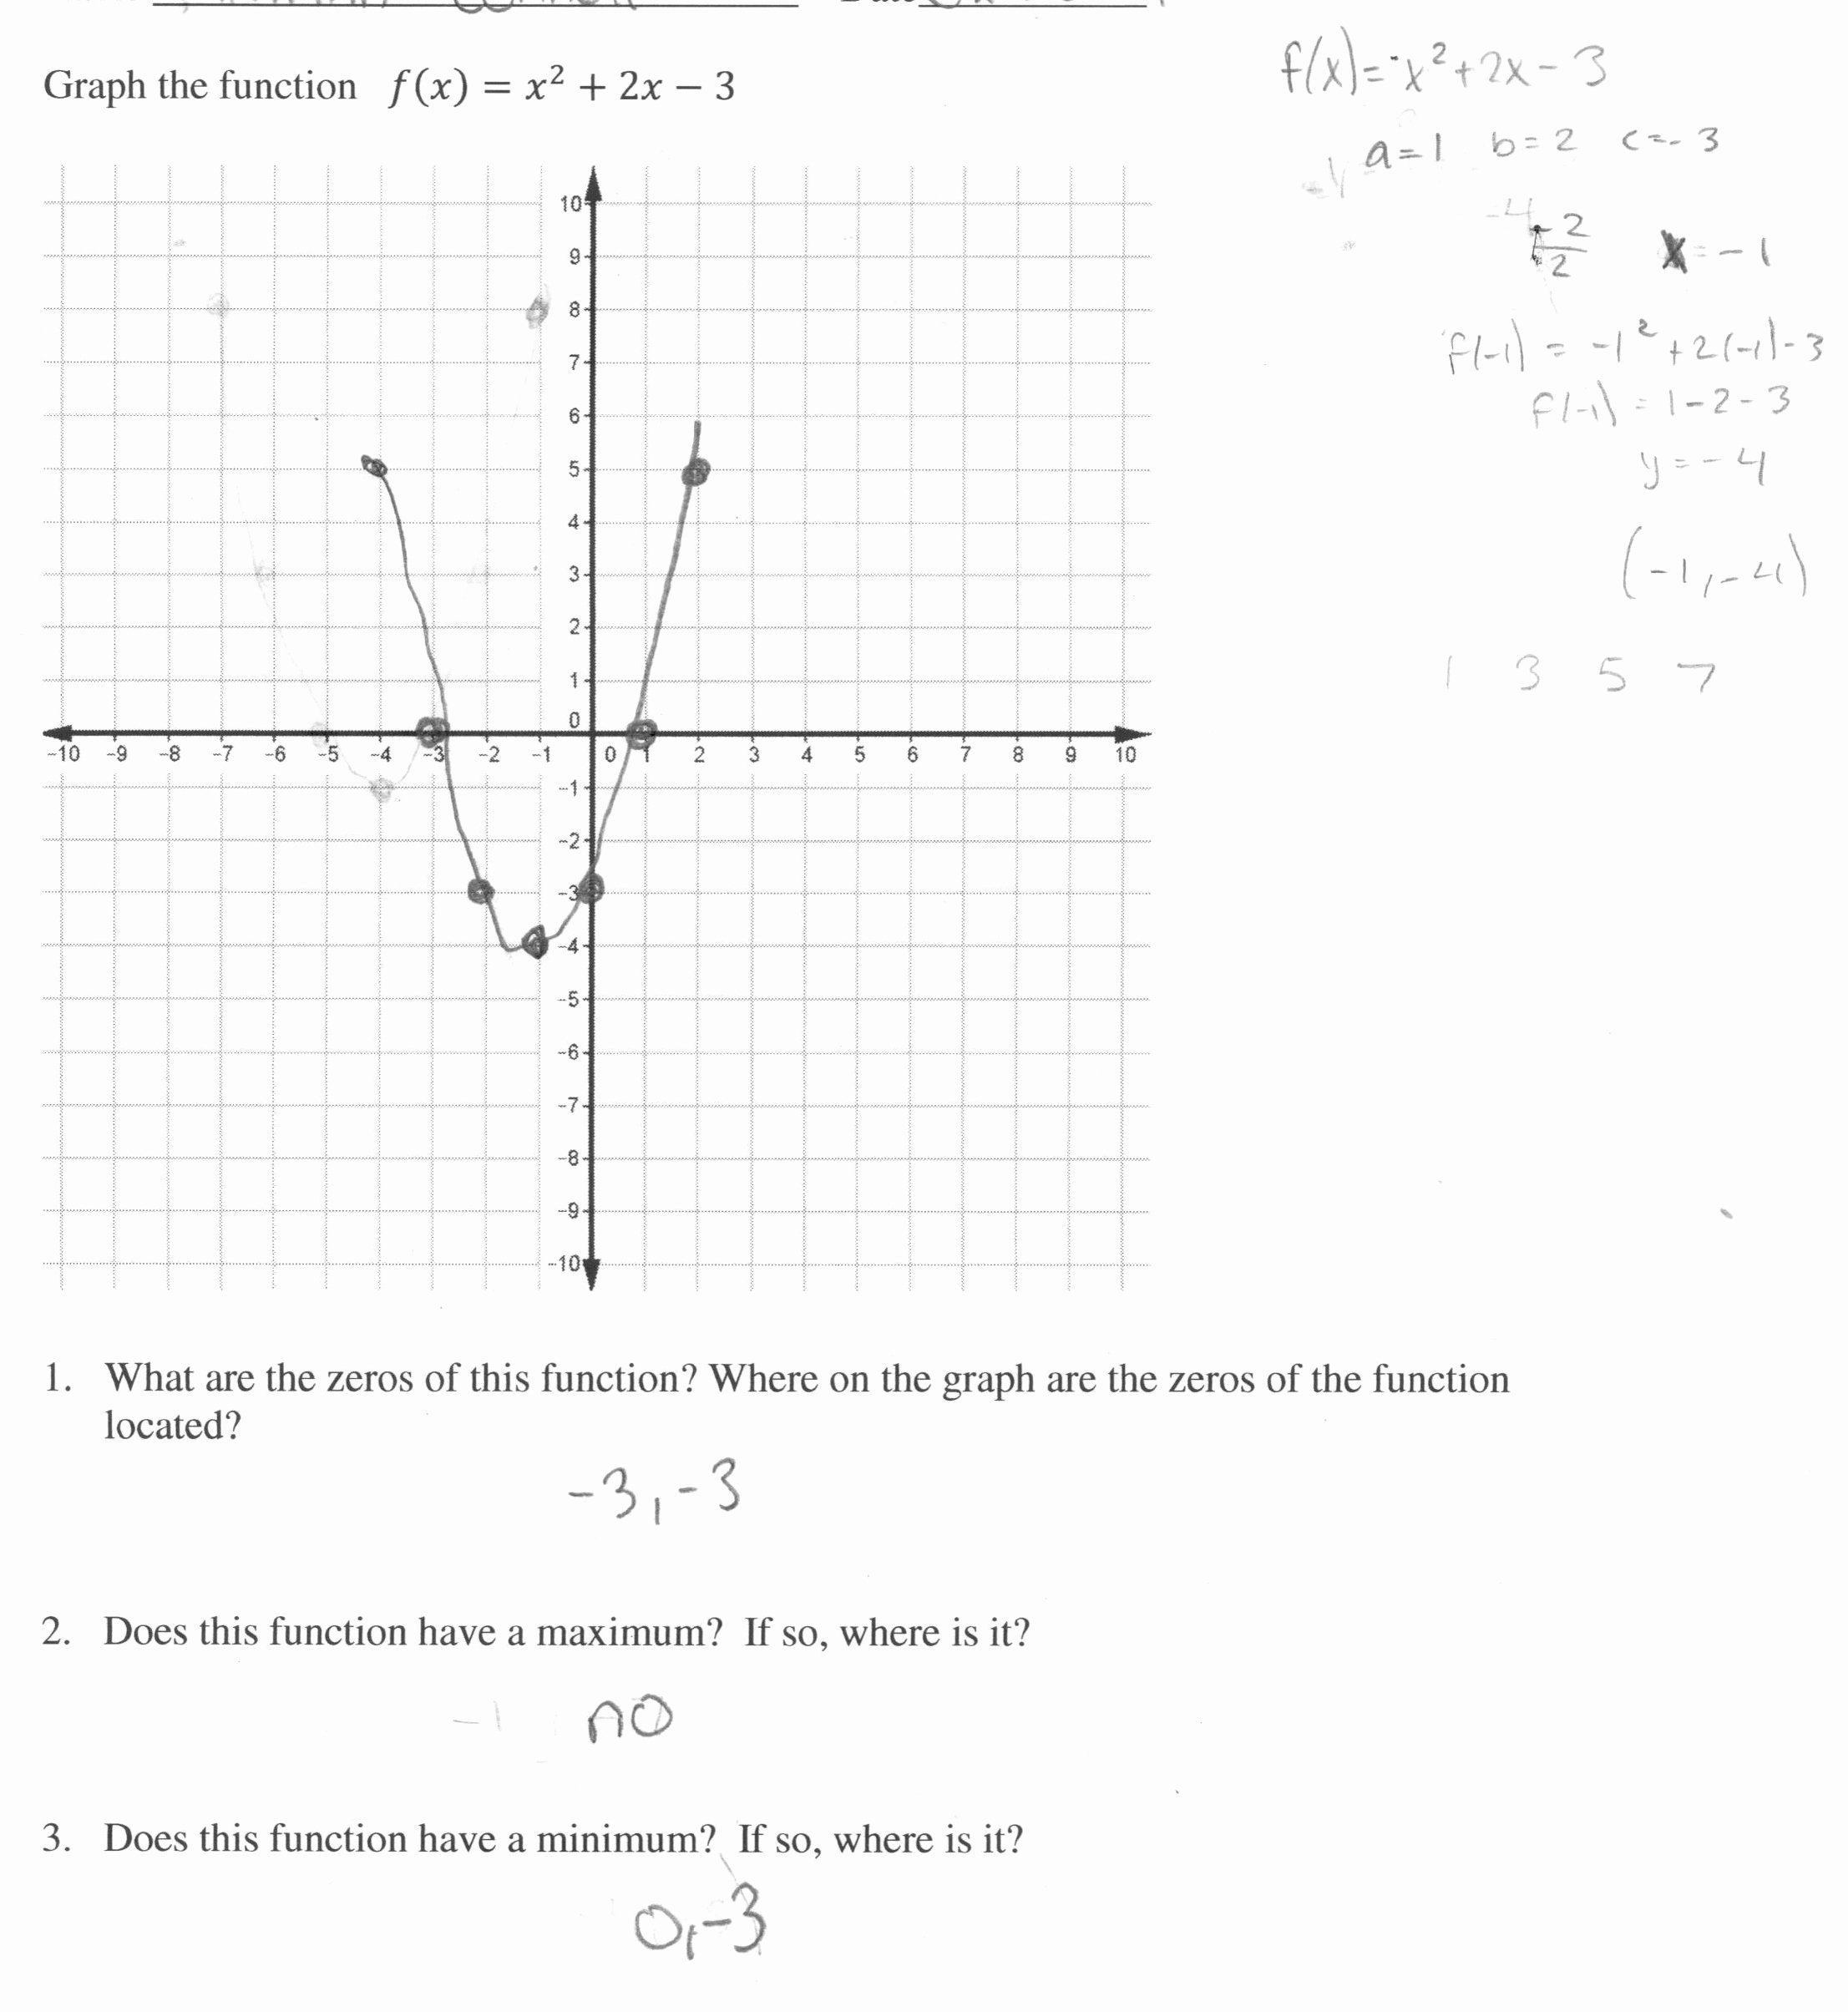 Graphing Quadratic Functions Worksheet Answers Awesome Graphing A Quadratic Function